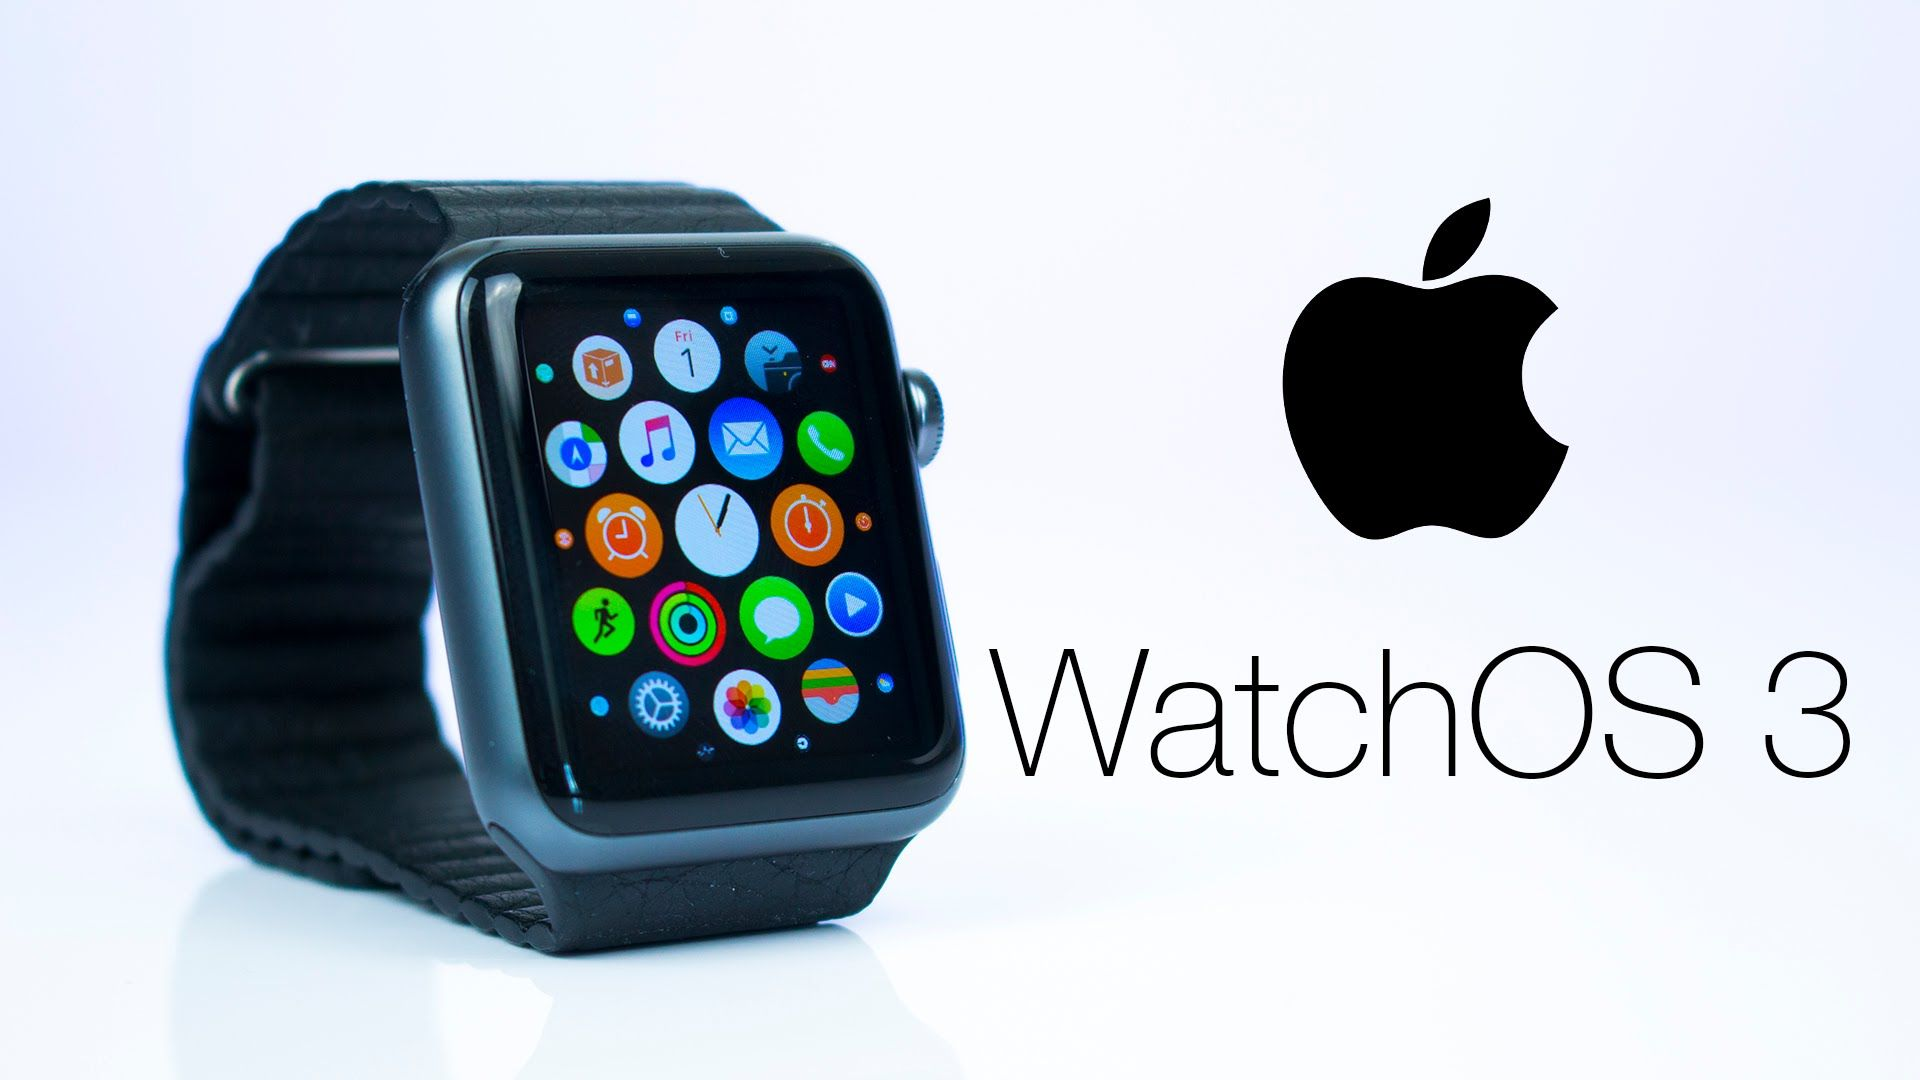 cool Apple Watch OS 3 - TOP 20 NEW Features! Check more at http://gadgetsnetworks.com/apple-watch-os-3-top-20-new-features/